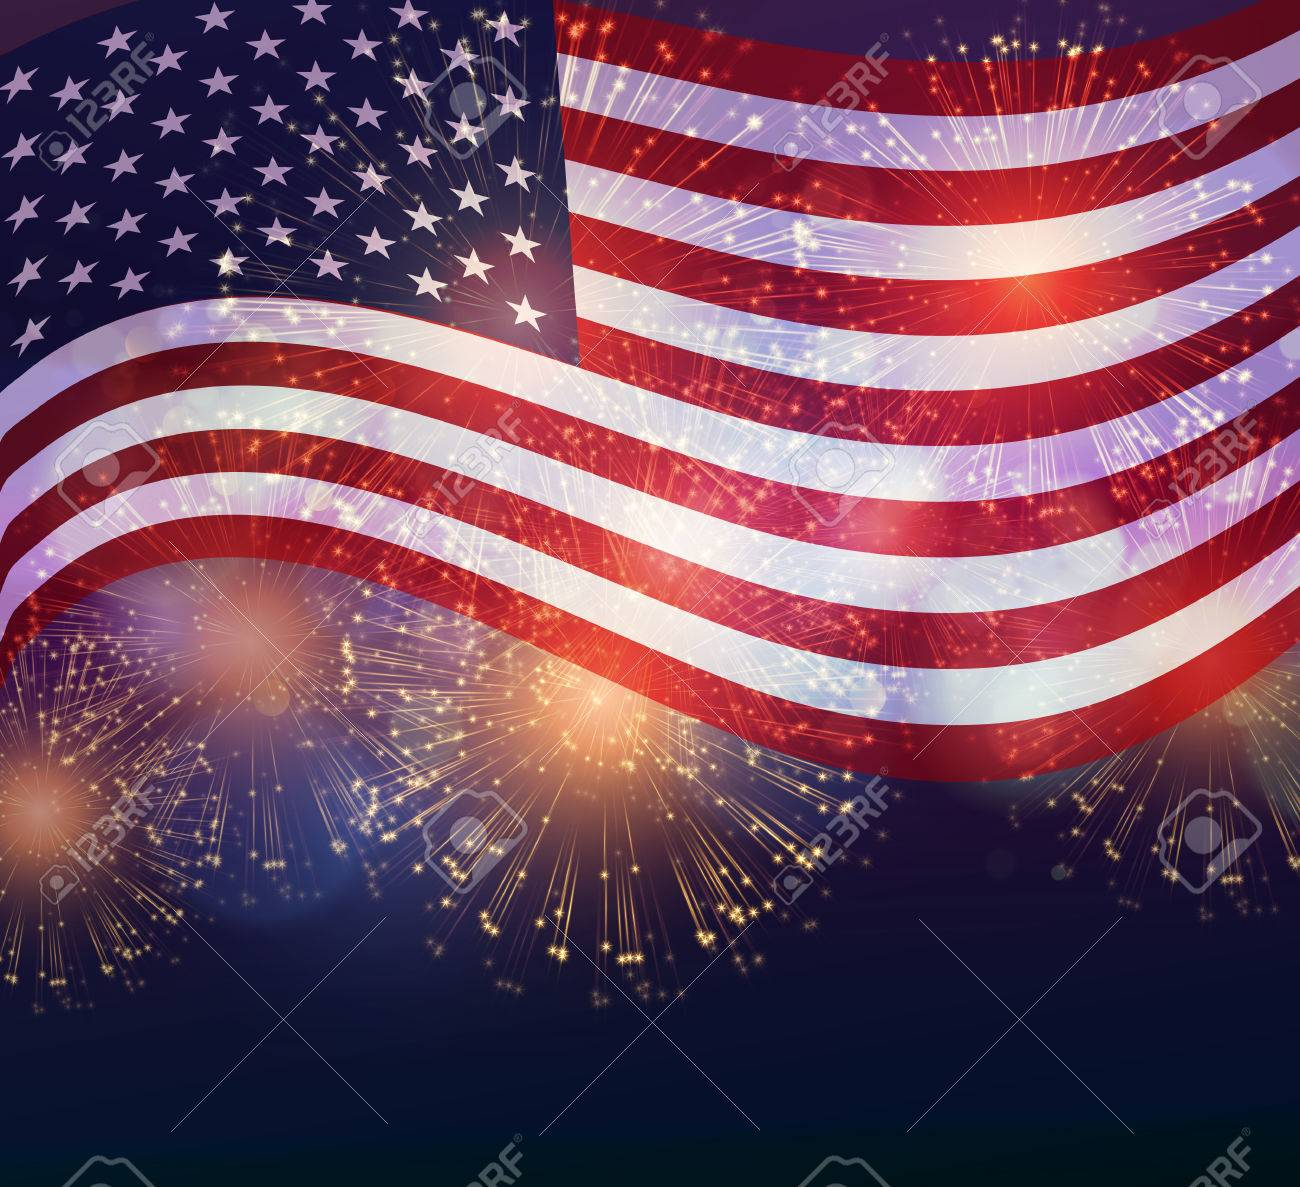 United States flag. Fireworks background for USA Independence Day. Fourth of July celebrate - 54436539